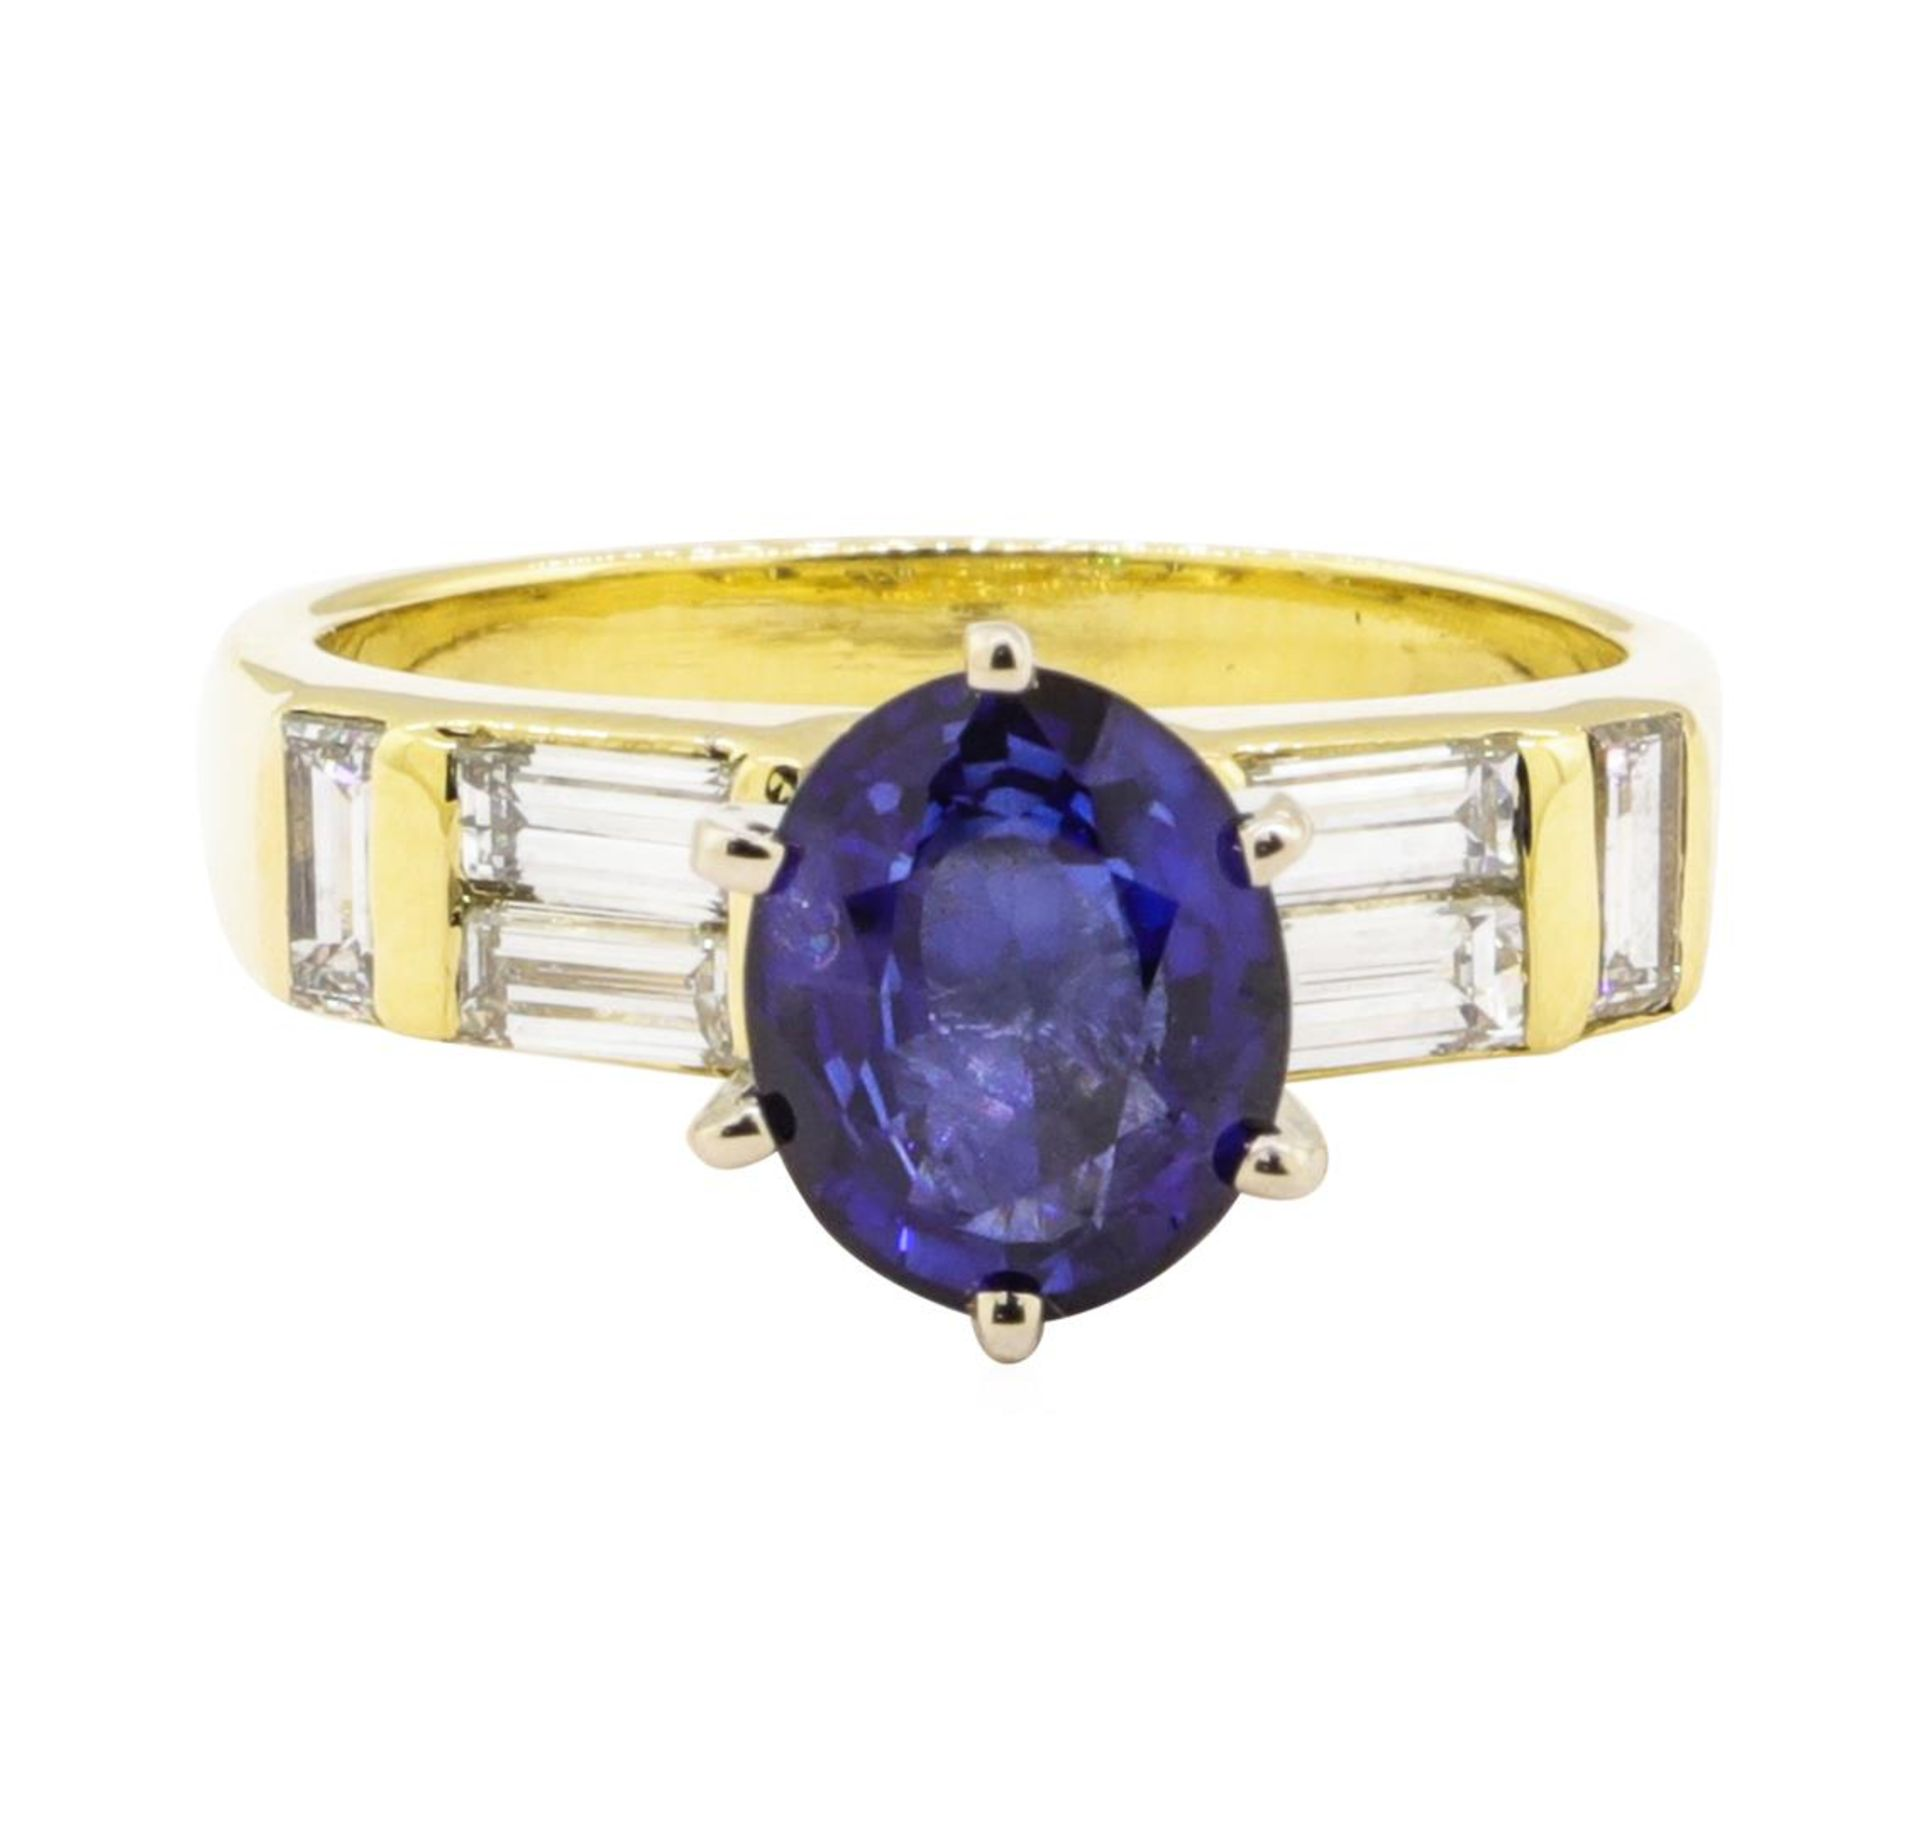 2.93 ctw Blue Sapphire And Diamond With Elevated Shoulders - 18KT Yellow Gold - Image 2 of 5